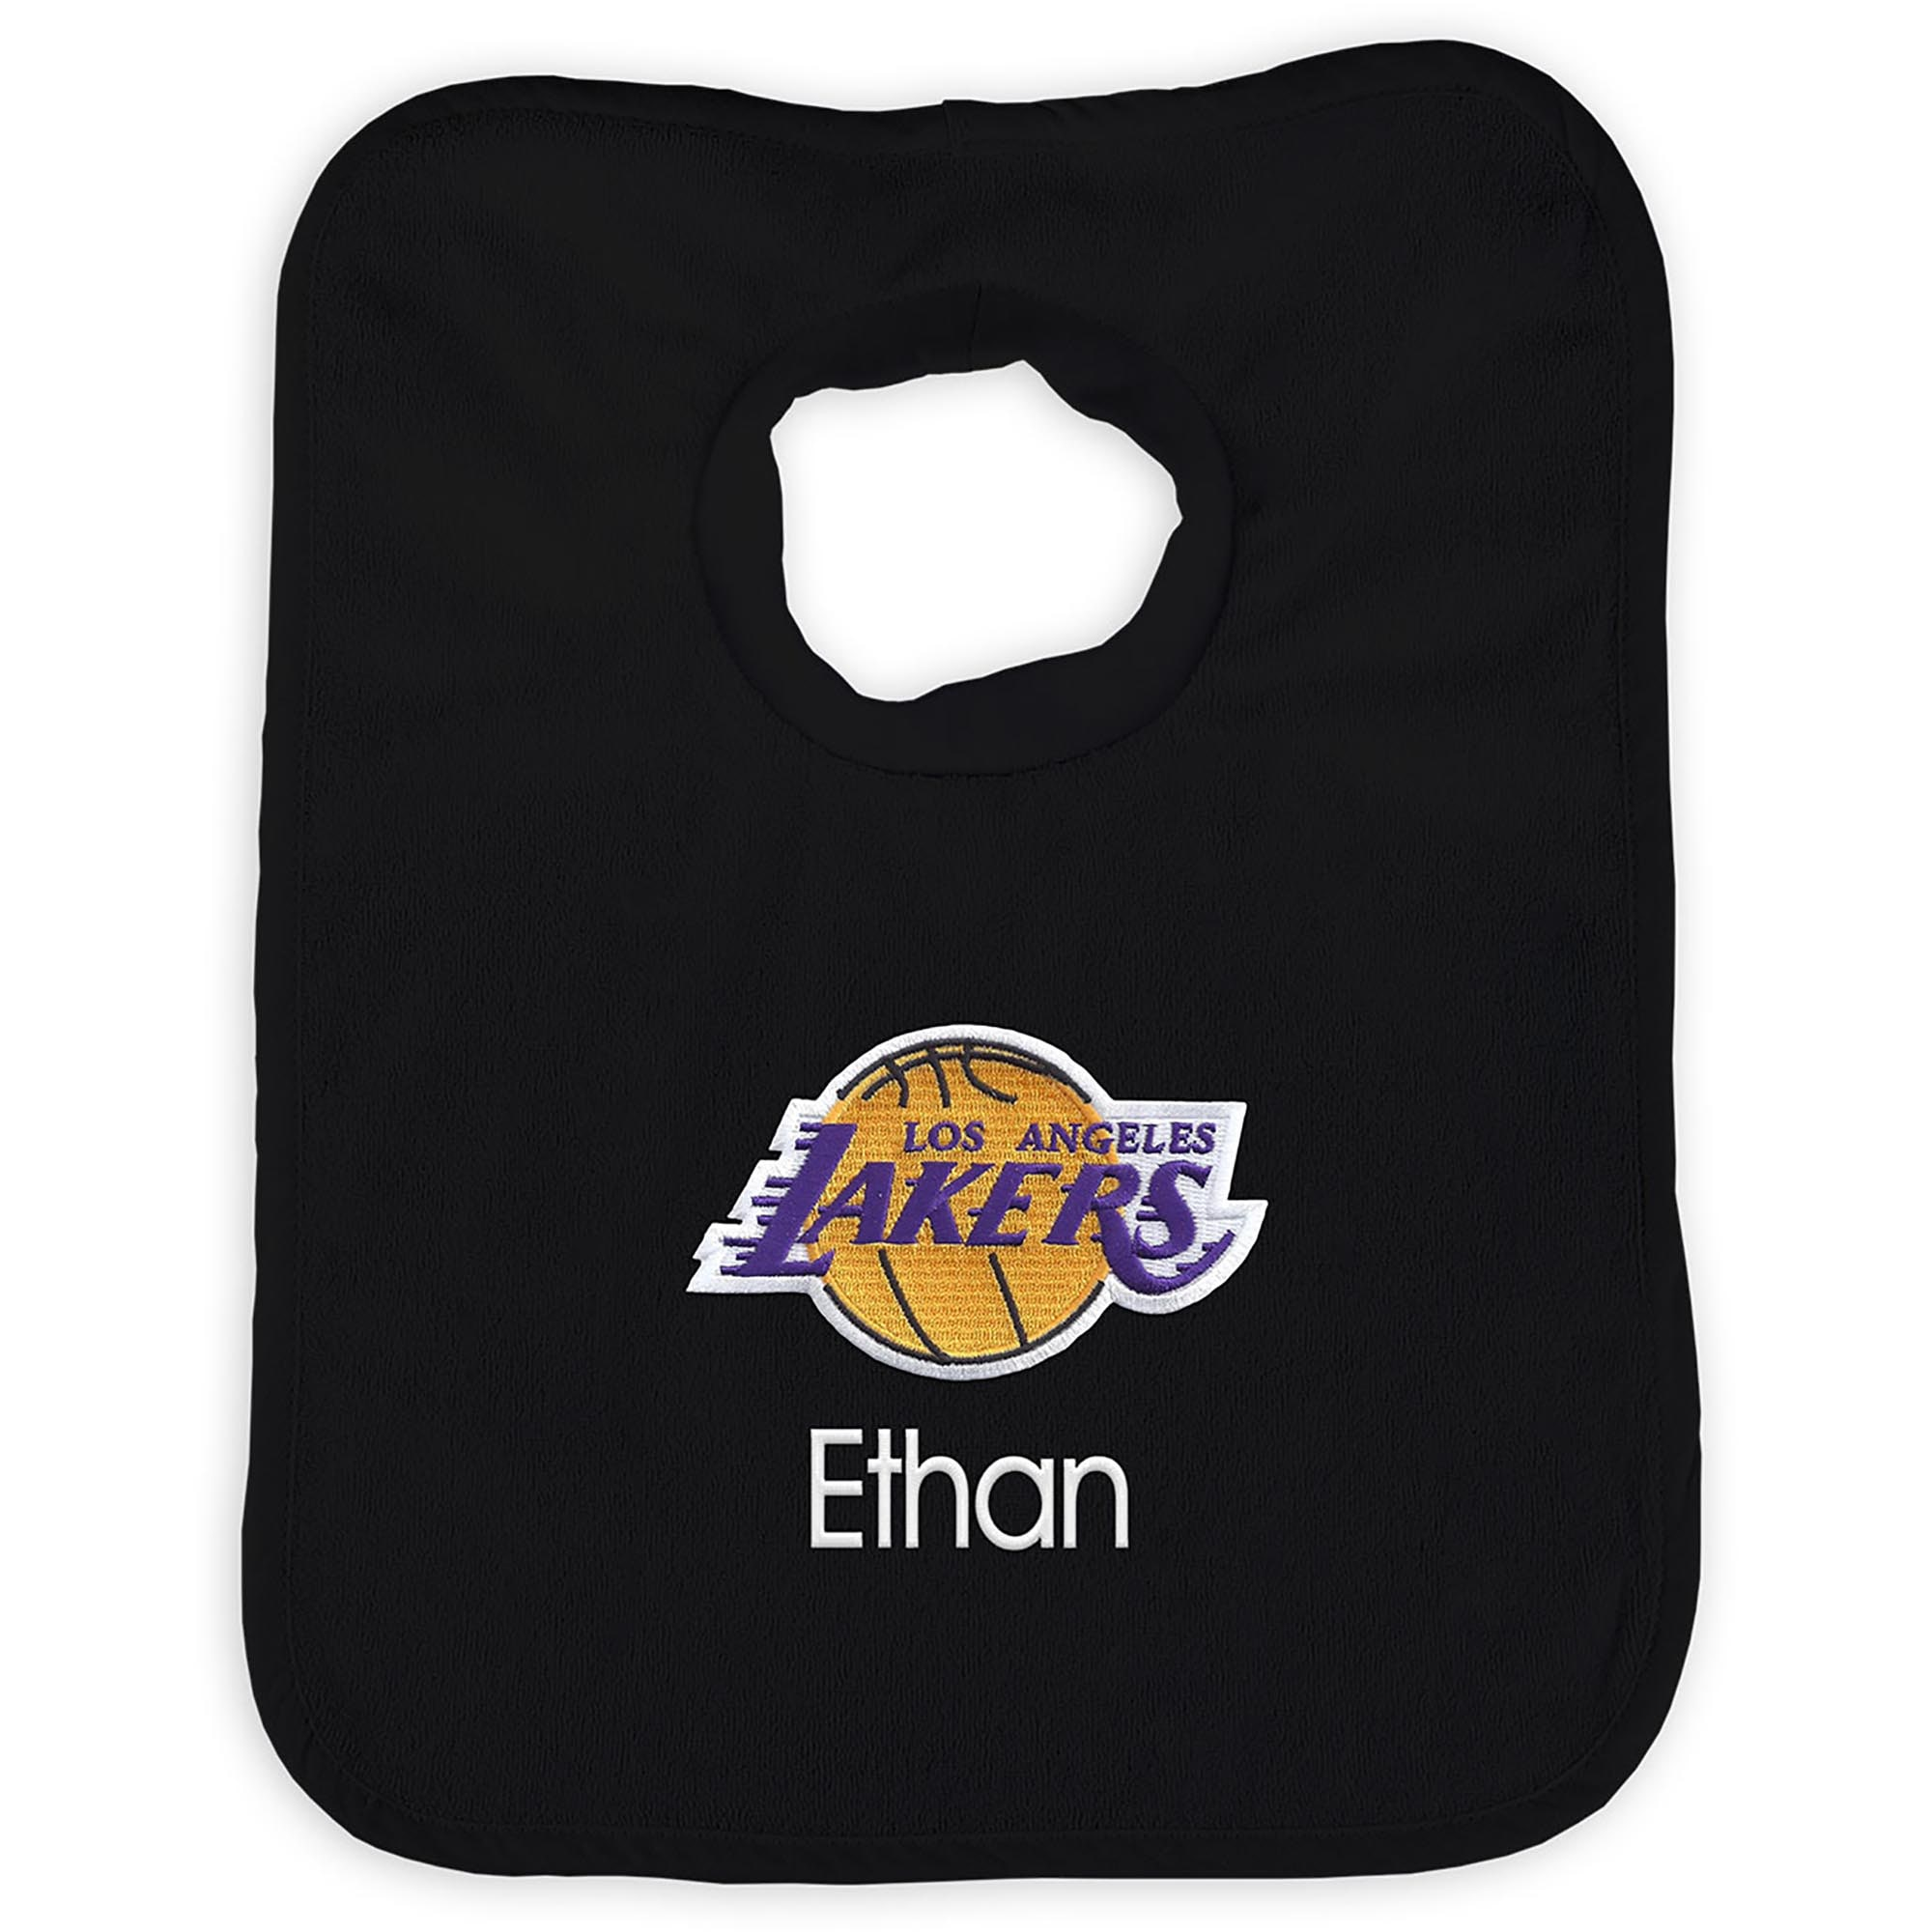 Los Angeles Lakers Infant Personalized Bib - Black